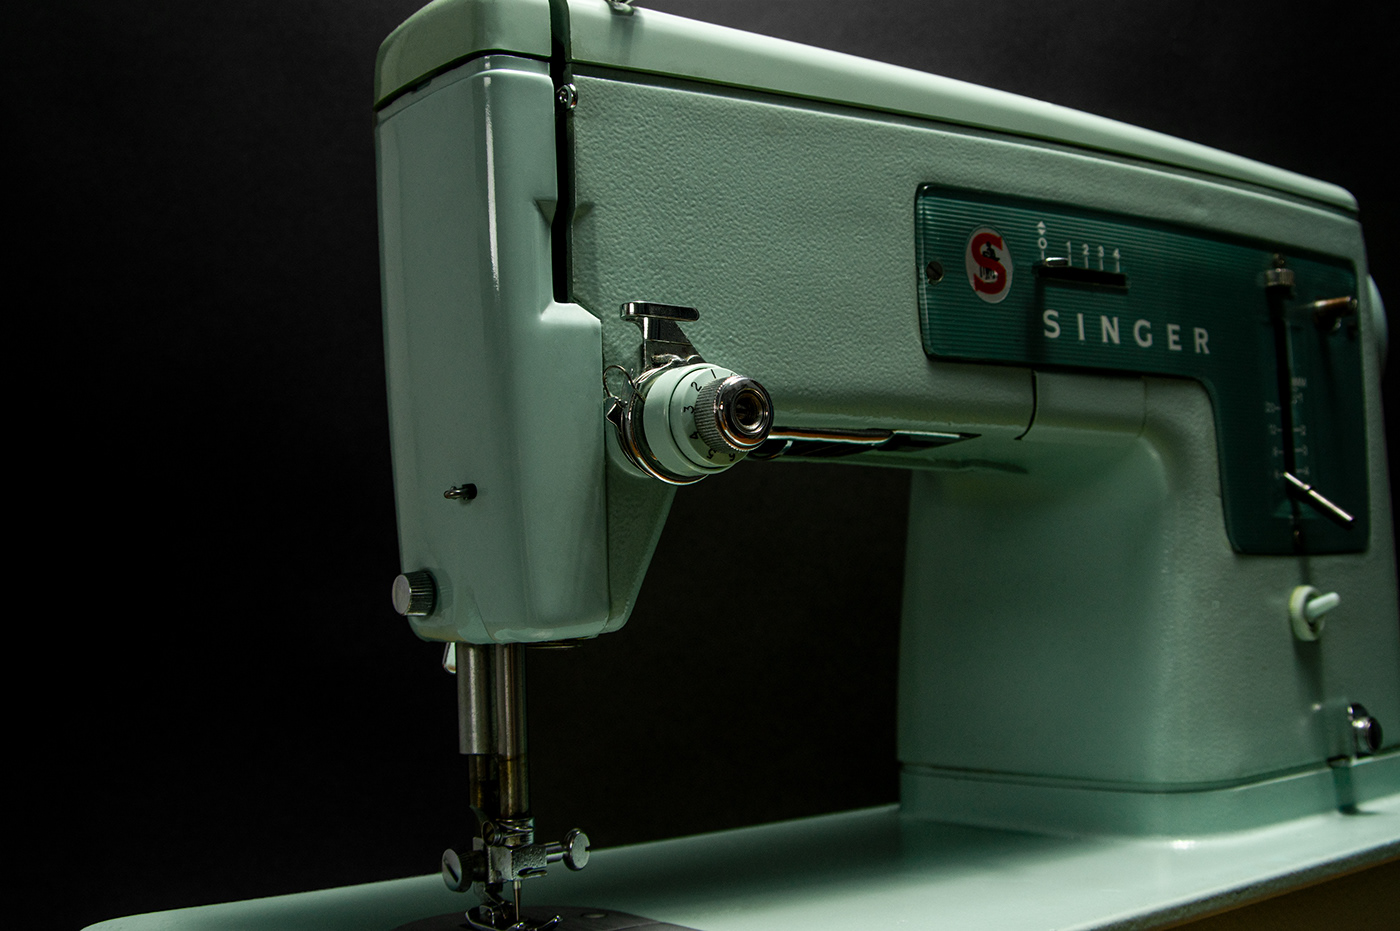 packshots Photography  Product Photography Retro sewing machine Singer